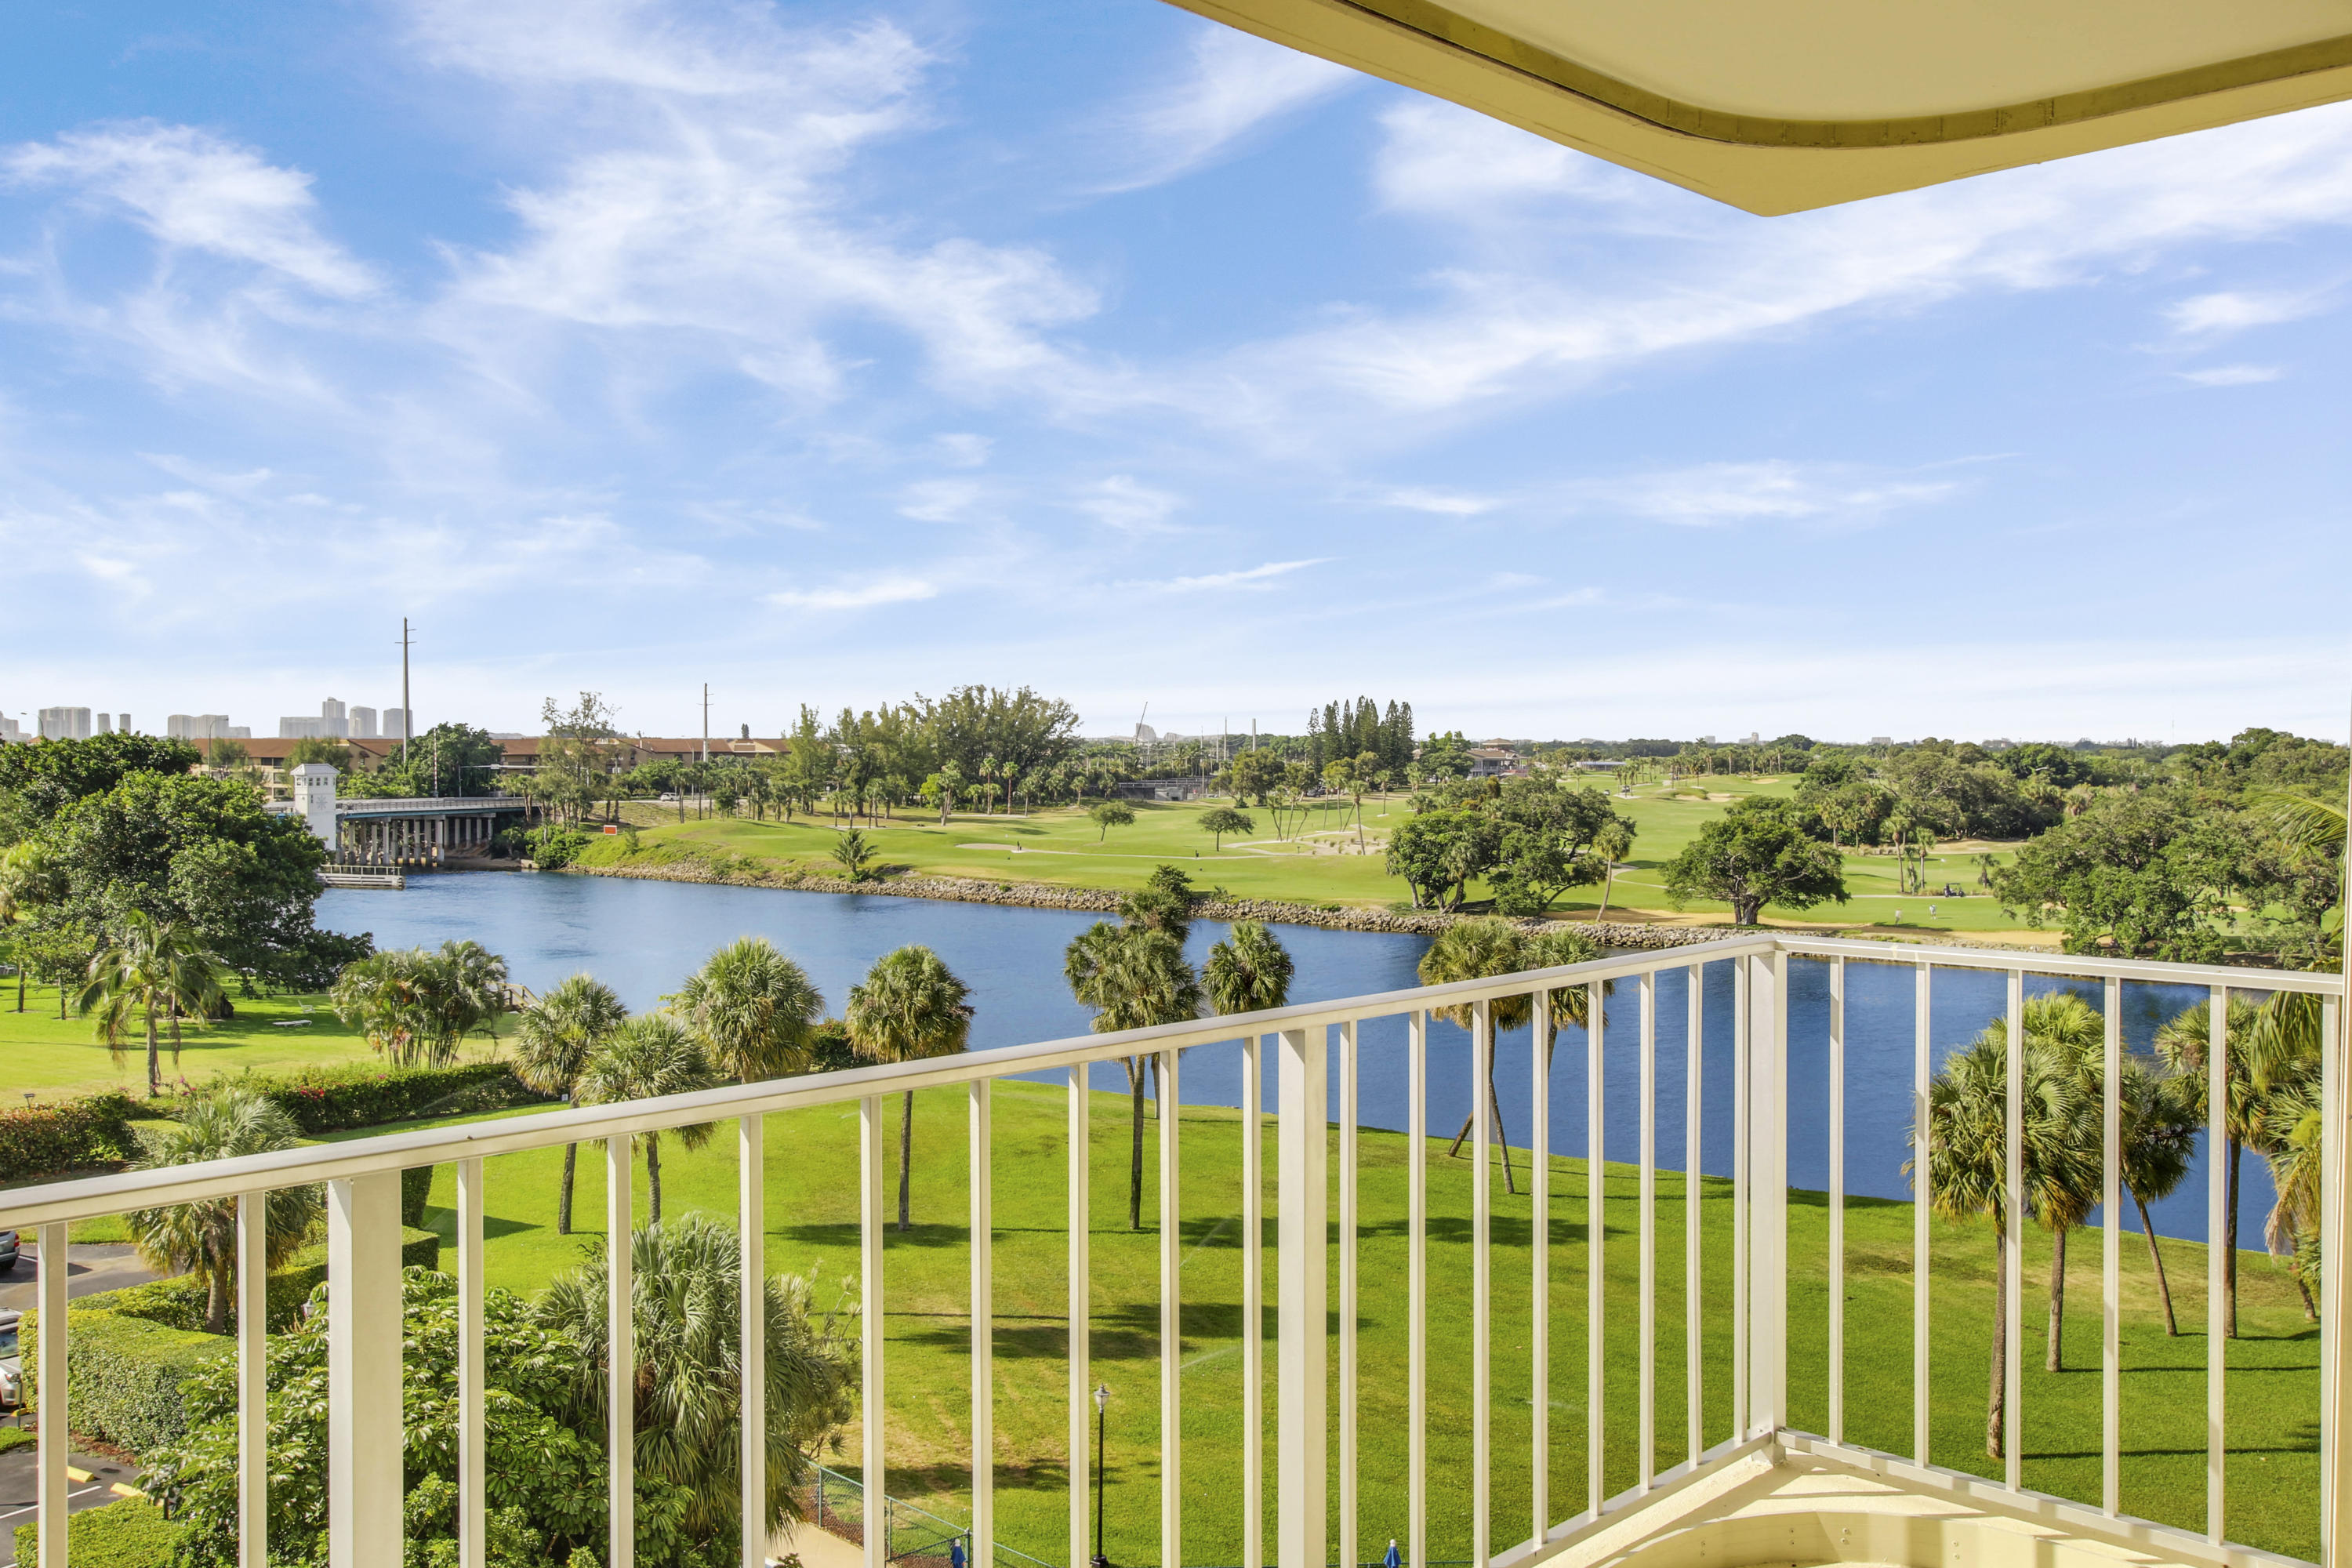 336 Golfview Road 603, North Palm Beach, Florida 33408, 2 Bedrooms Bedrooms, ,2 BathroomsBathrooms,A,Condominium,Golfview,RX-10535039